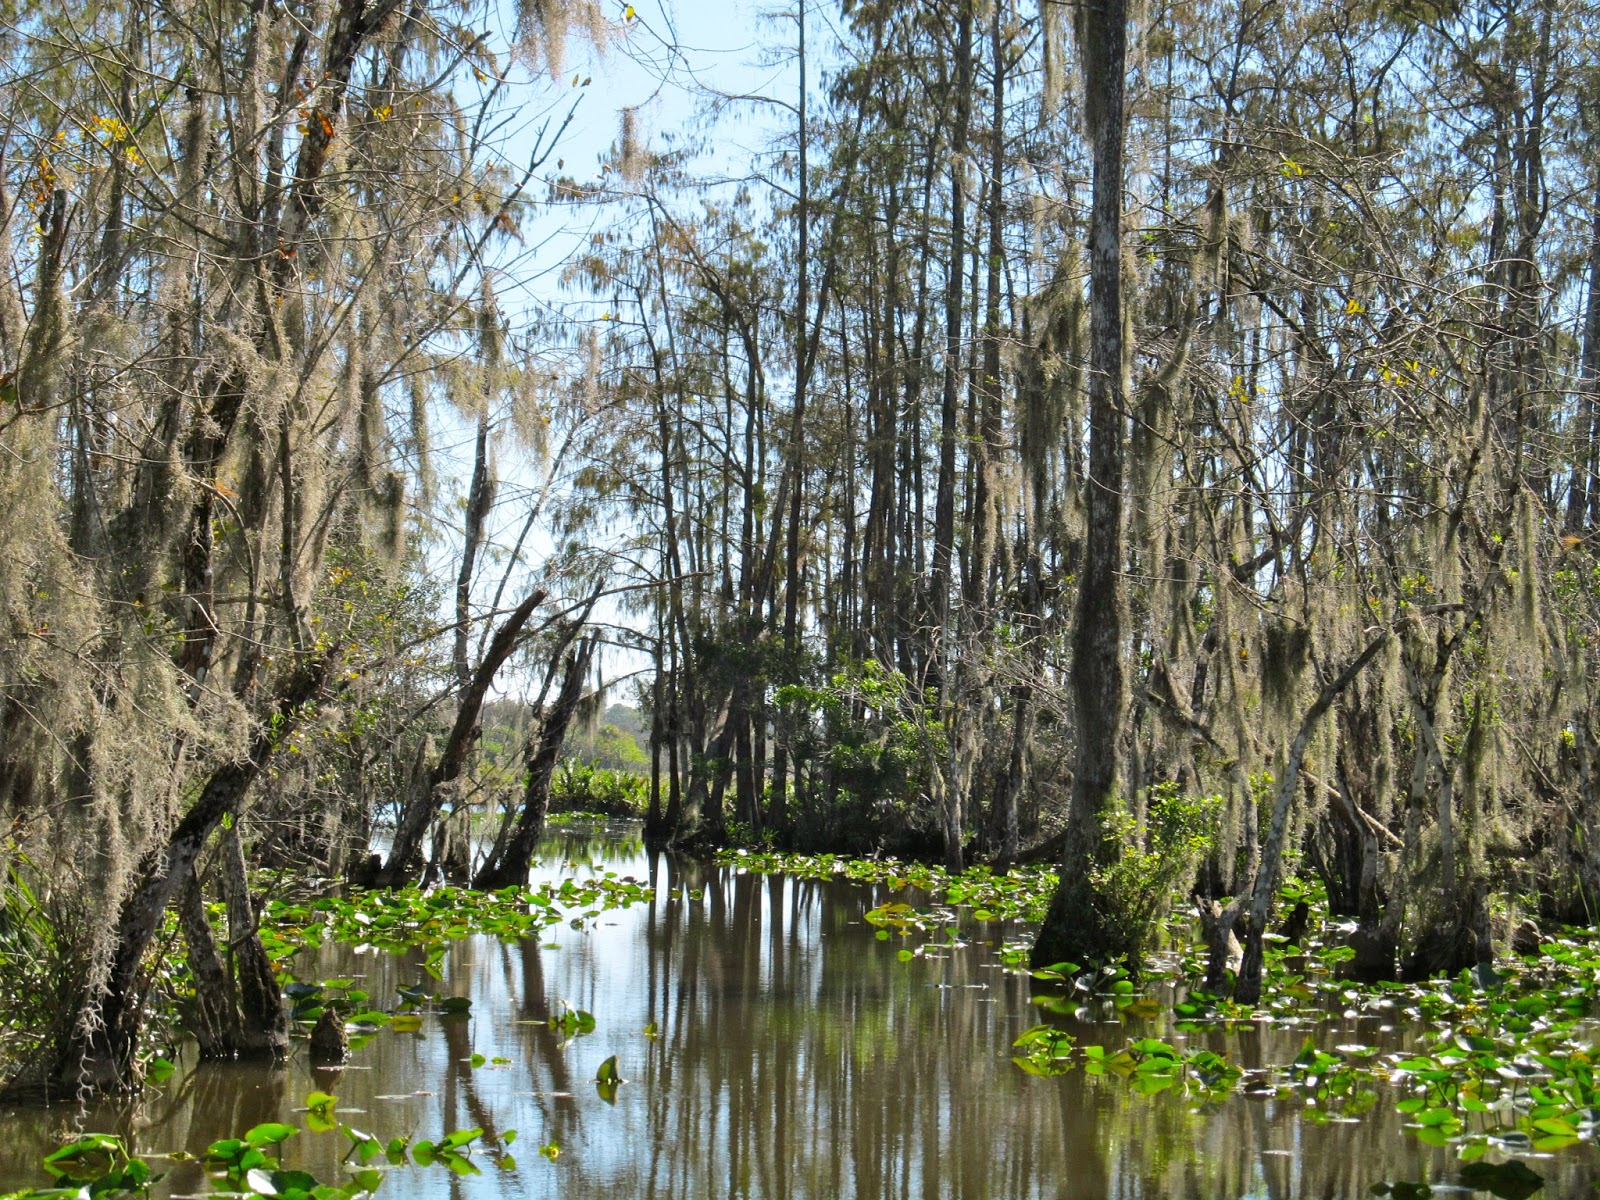 Billie Swamp Safari, Florida Everglades